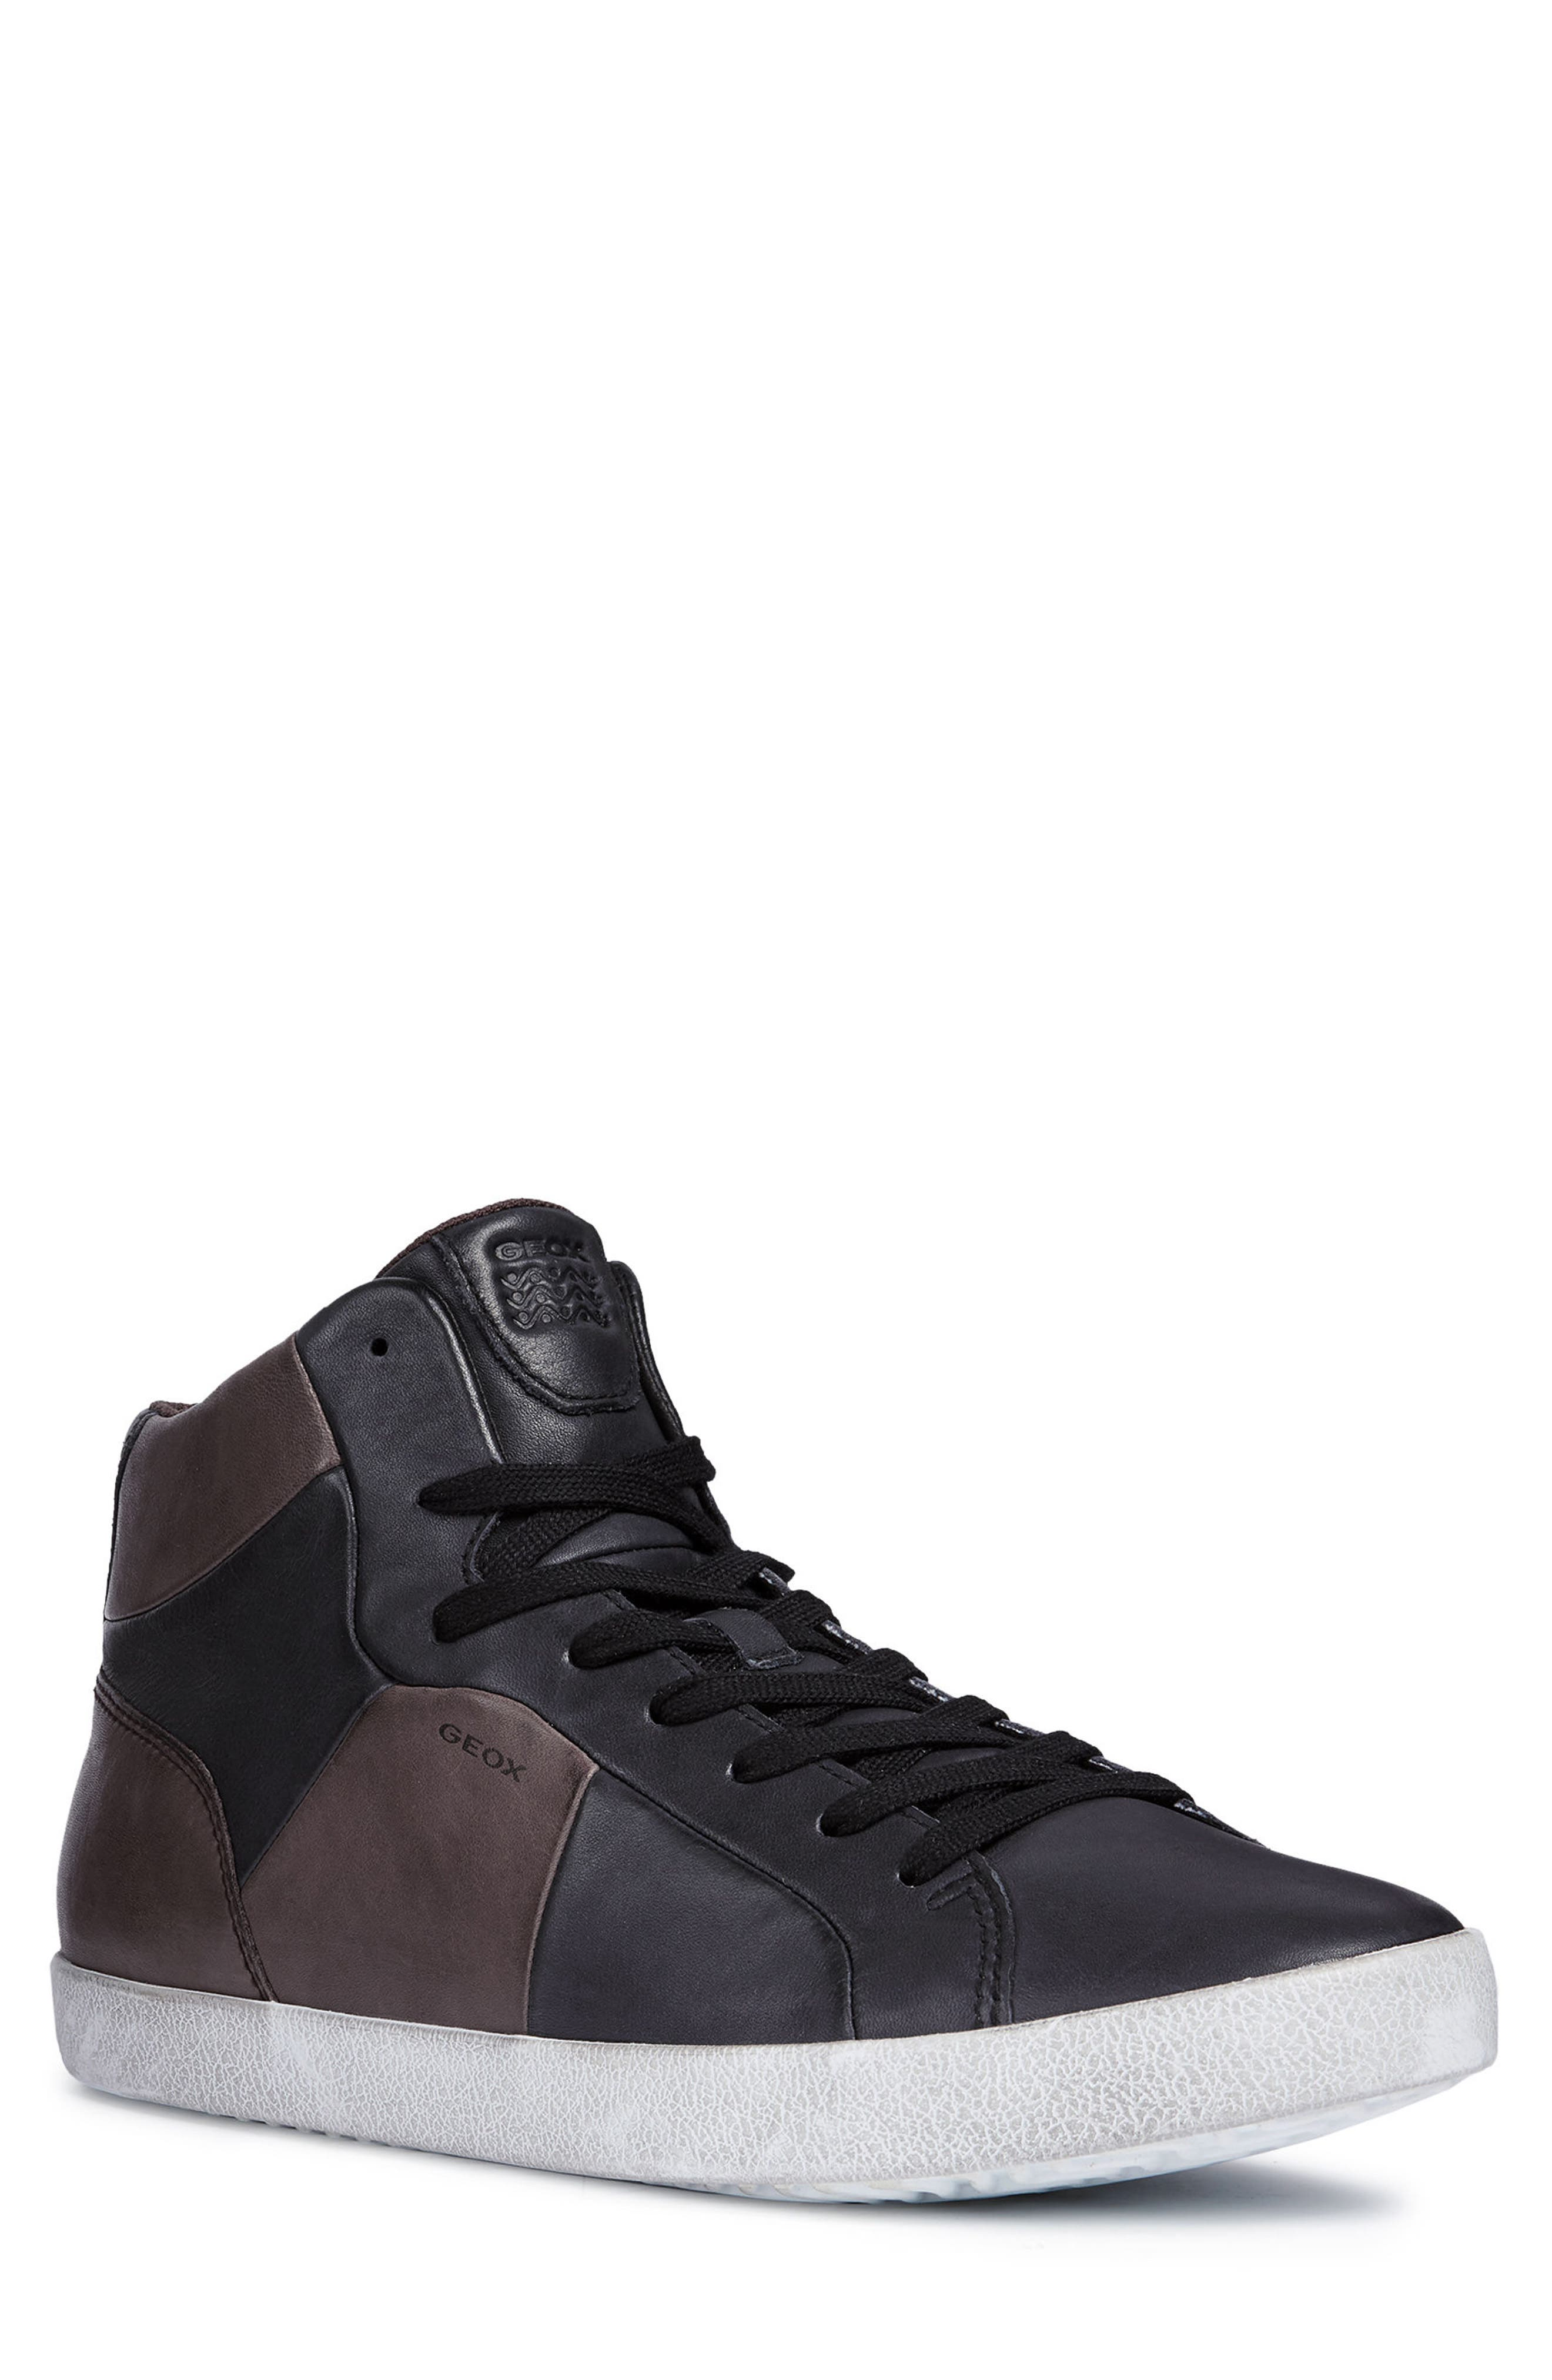 Smart 84 High Top Sneaker,                             Main thumbnail 1, color,                             BLACK/ COFFEE LEATHER